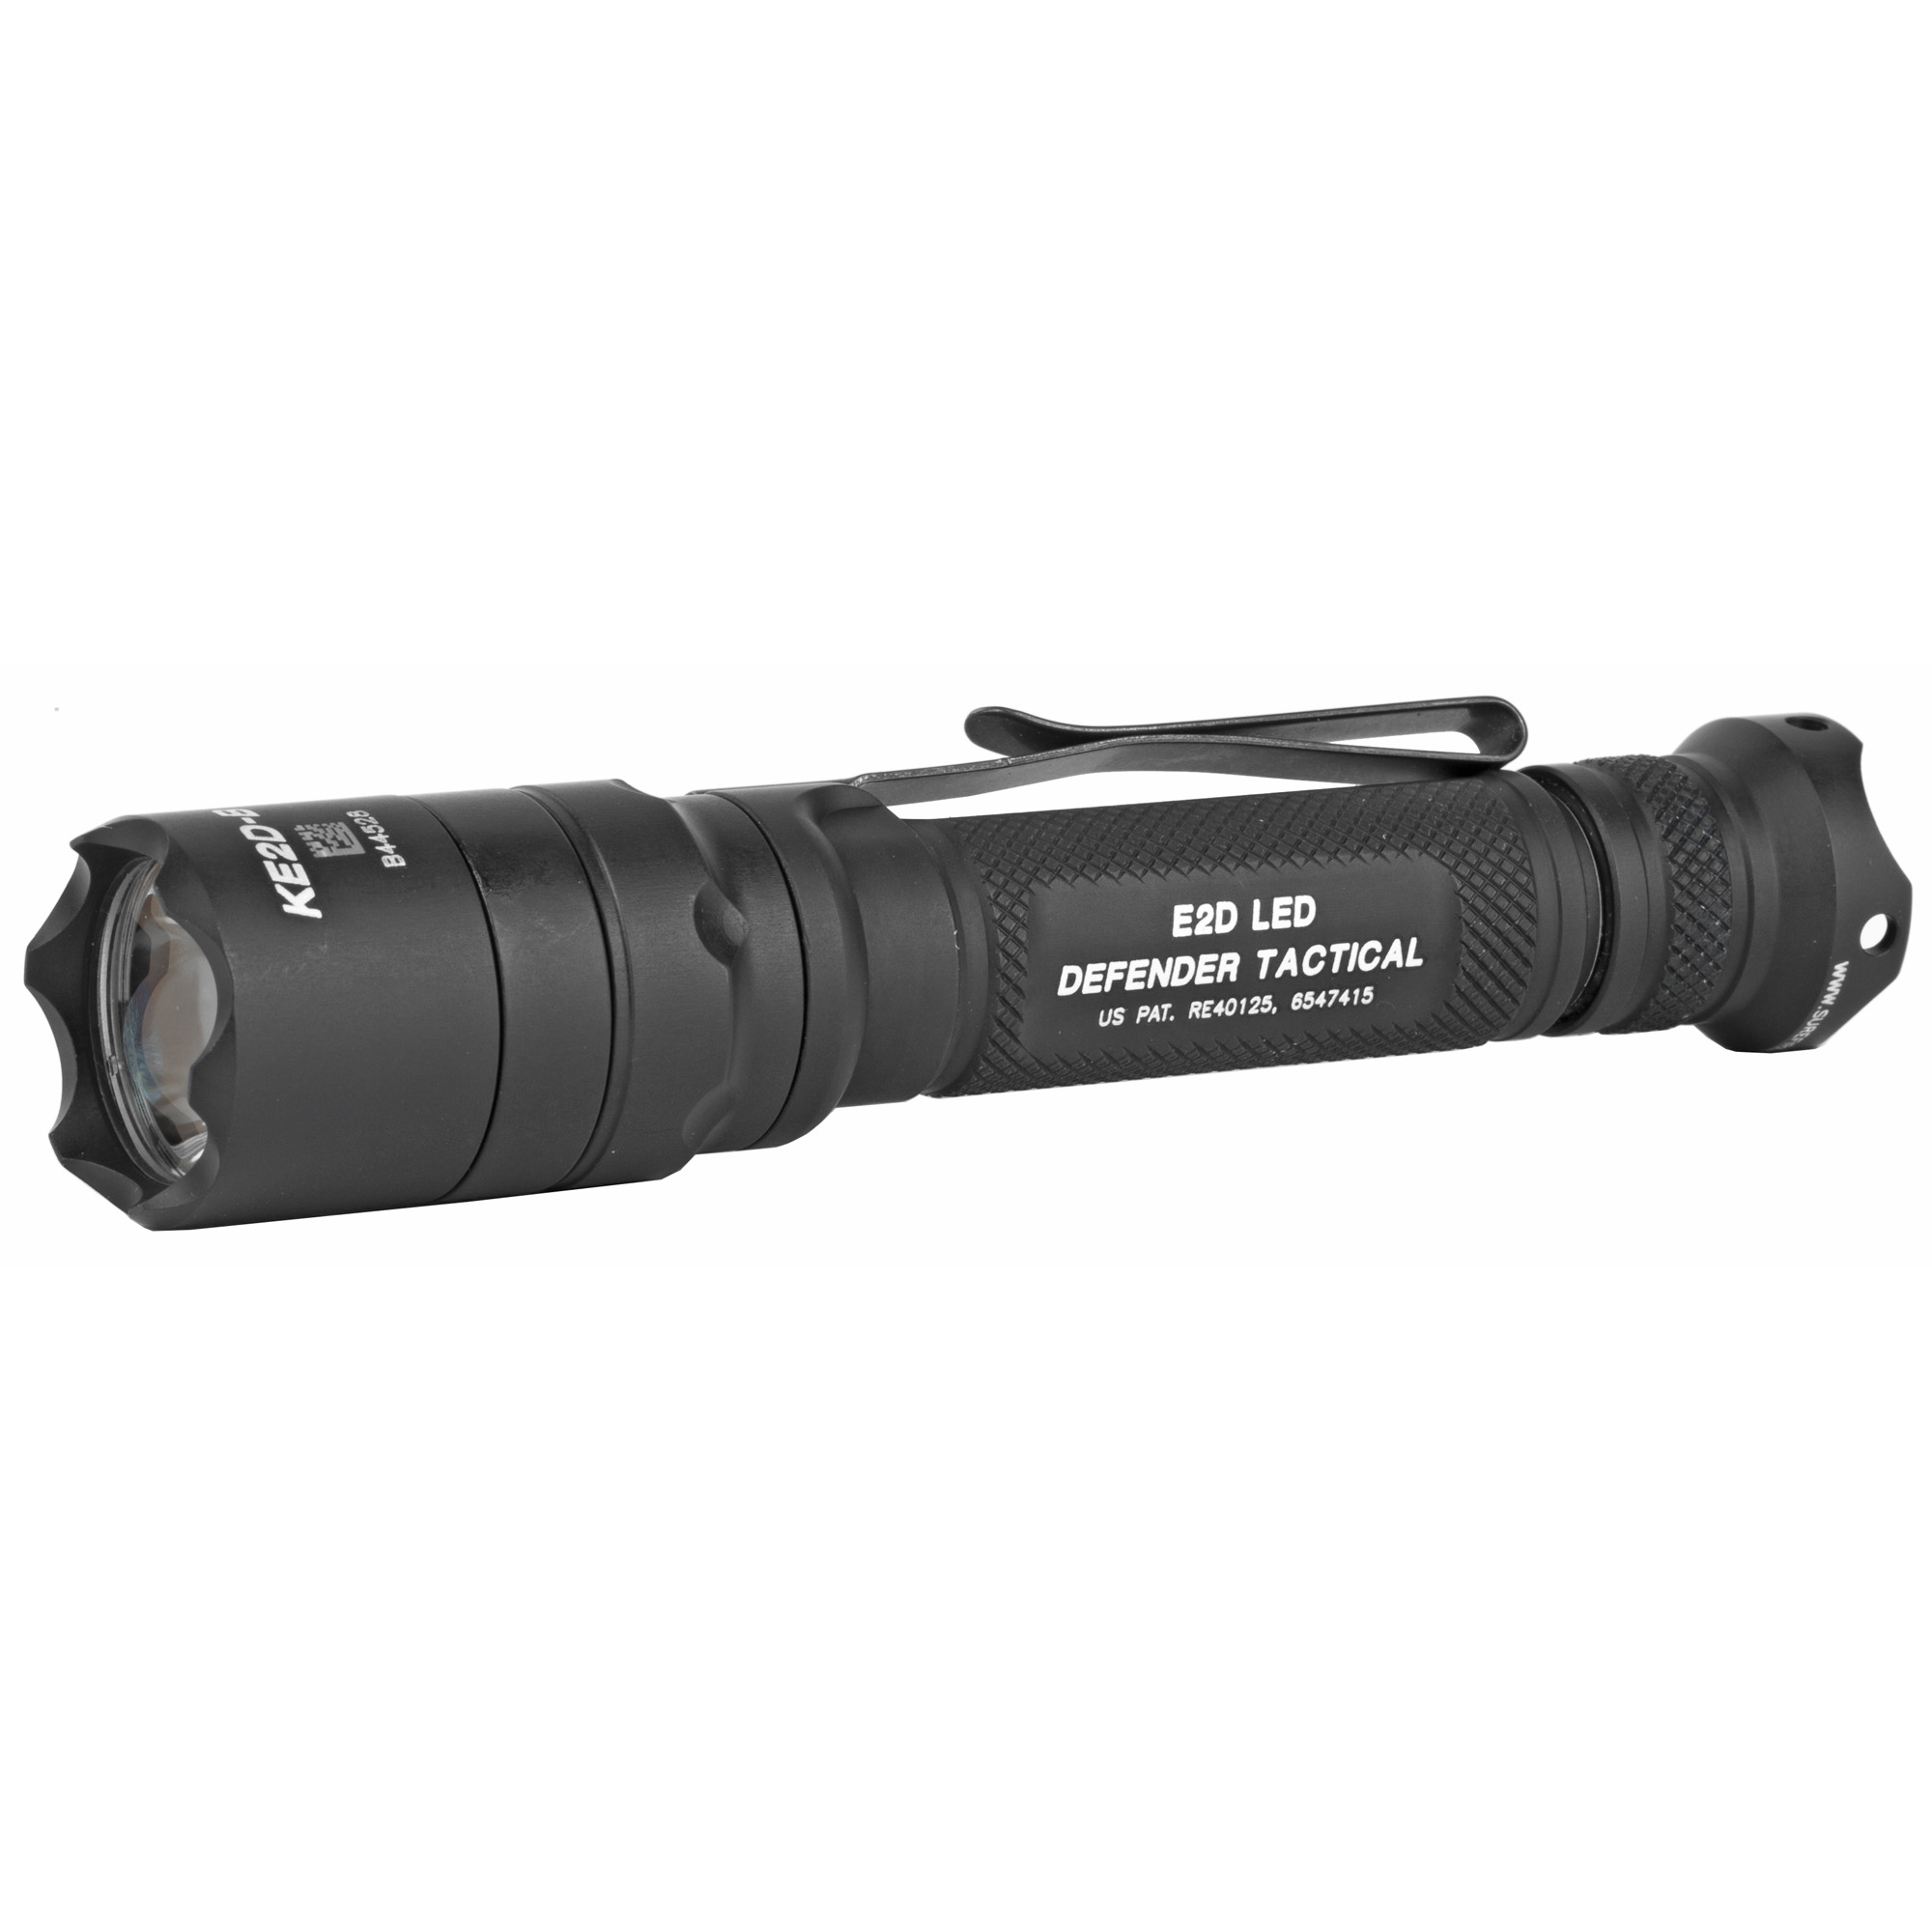 """SureFire has developed the superlative everyday-carry tactical light. The Defender lives up to its name in more ways than one. Machined from aerospace aluminum"""" its crenellated Strike Bezel(R) and scalloped tail cap turn this robust illumination tool into a potential impact weapon"""" so it can take a beating-or give one if necessary. The Defender body also features a Type III Mil-Spec hard-anodized coating for abrasion and corrosion resistance in foul weather or other adverse environments. A bolstered dual-function pocket clip makes bezel-up or bezel-down pocket storage easy too. The E2D Defender Tactical (E2DLU-T) utilizes SureFire's virtually indestructible high-performance LED. The very heart of these slender and powerful lights"""" it pumps out an intense"""" 1""""000-lumen beam"""" precisely focused through our optimized Total Internal Reflection (TIR) lens. That's plenty of output to momentarily disorient virtually any adversary and gain a crucial tactical advantage. The Ultra adds the extra value of dual-output capability. Clicking its tail cap twice yields a battery-saving 5 lumens"""" ideal for the most basic low-light tasks such as map reading and other close-range applications. And with a continuous low-output run time of 63 hours"""" you can trust the Ultra to keep you company from sunset to sunrise."""